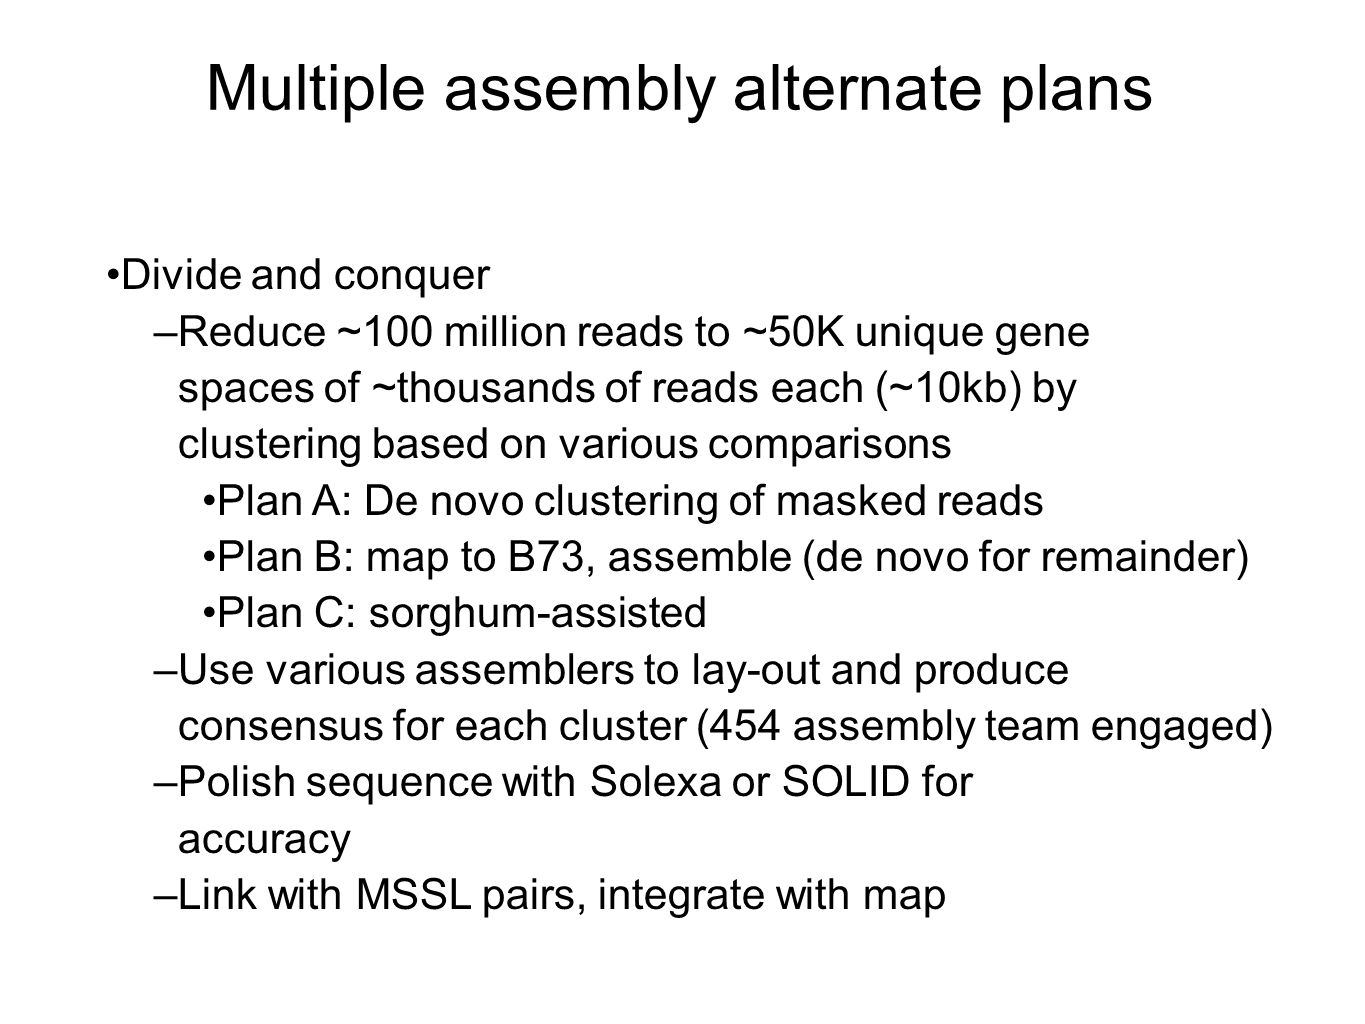 Multiple assembly alternate plans Divide and conquer –Reduce ~100 million reads to ~50K unique gene spaces of ~thousands of reads each (~10kb) by clustering based on various comparisons Plan A: De novo clustering of masked reads Plan B: map to B73, assemble (de novo for remainder) Plan C: sorghum-assisted –Use various assemblers to lay-out and produce consensus for each cluster (454 assembly team engaged) –Polish sequence with Solexa or SOLID for accuracy –Link with MSSL pairs, integrate with map